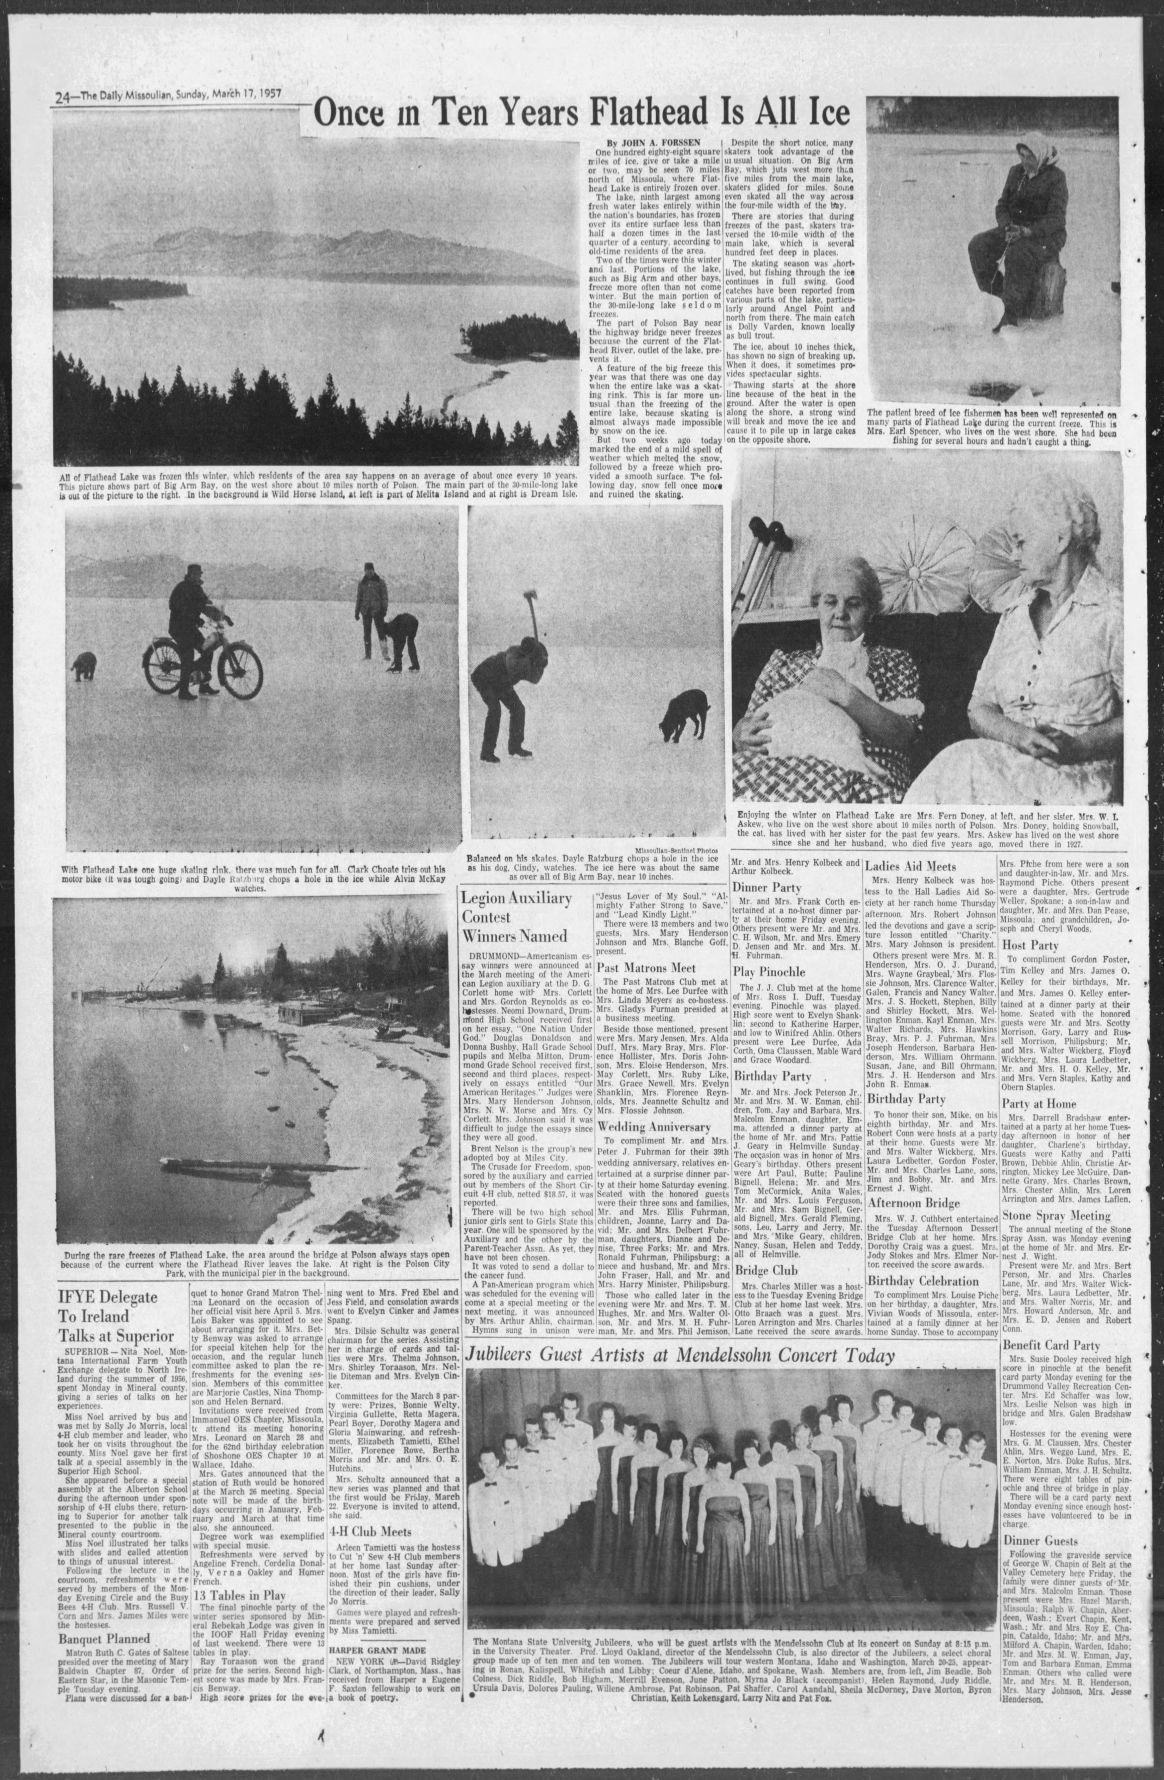 Flathead Lake freezes over in 1957